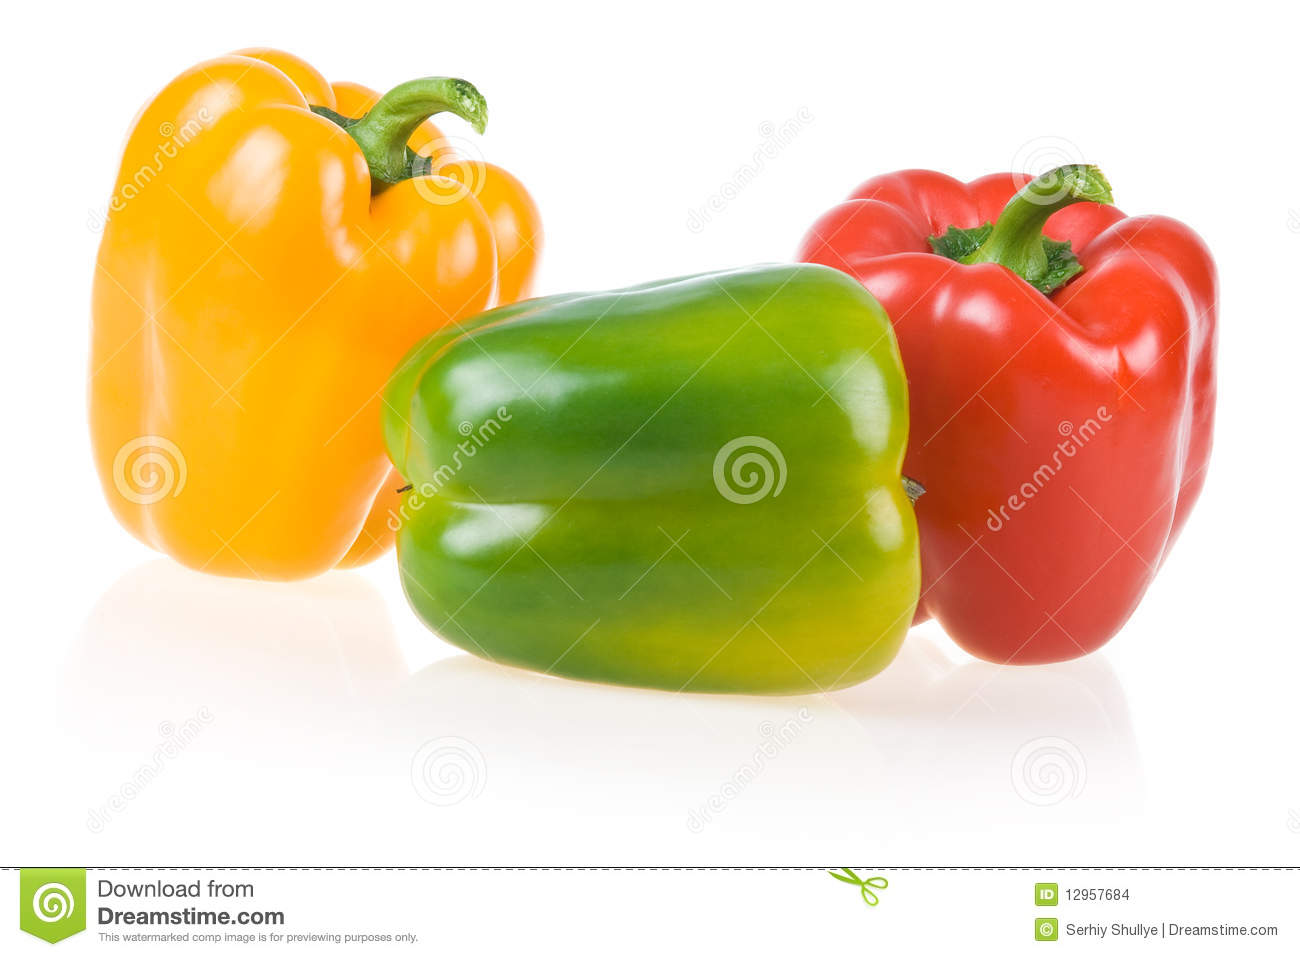 Ripe Yellow, Green and Red Paprika Isolated